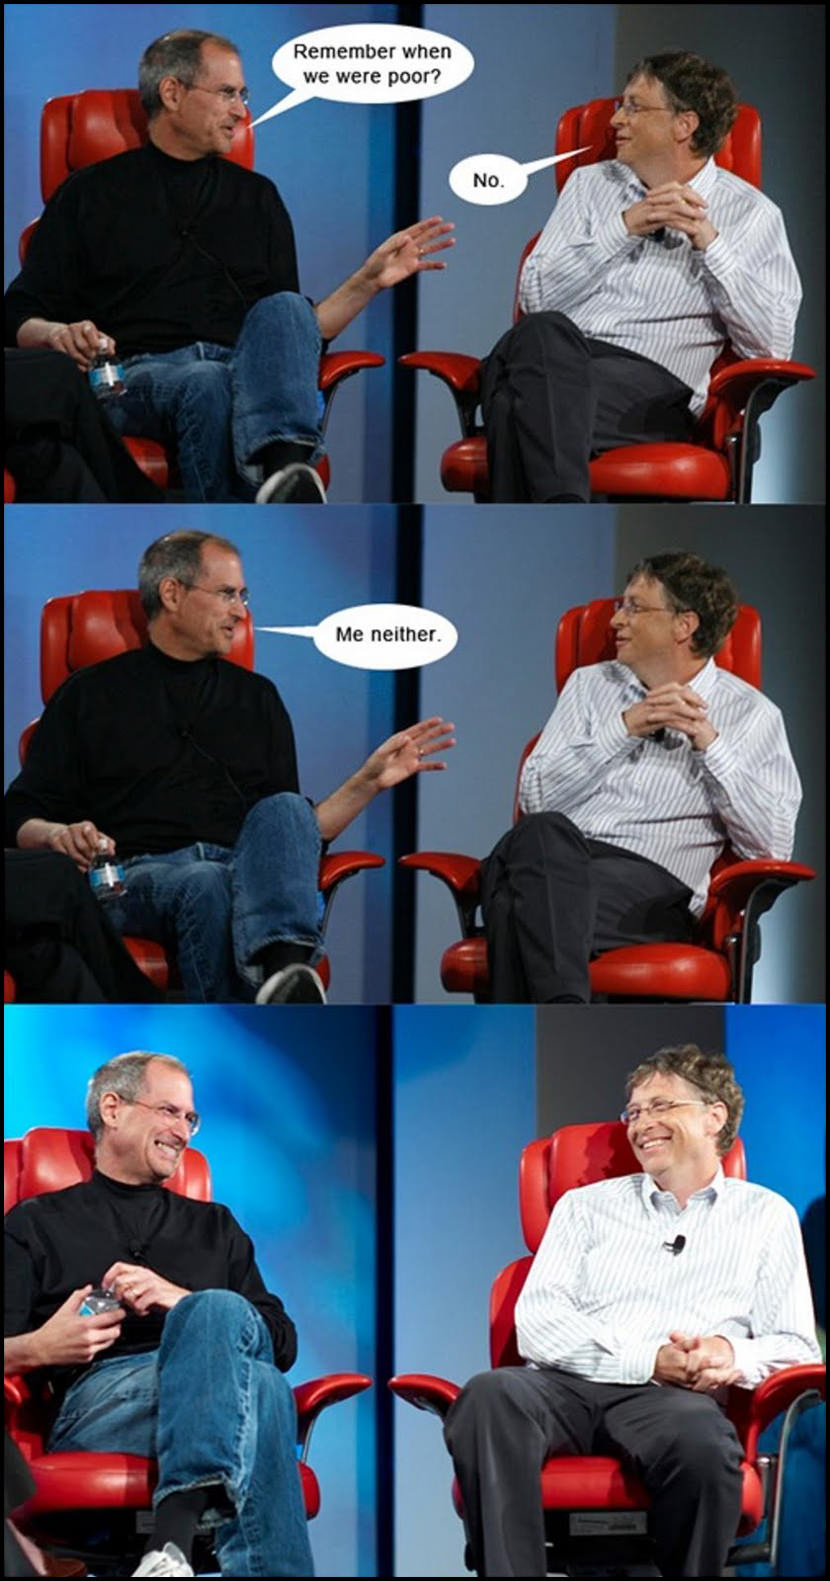 Steve Jobs comes from a middle class family while Bill Gates comes from a upper class family.